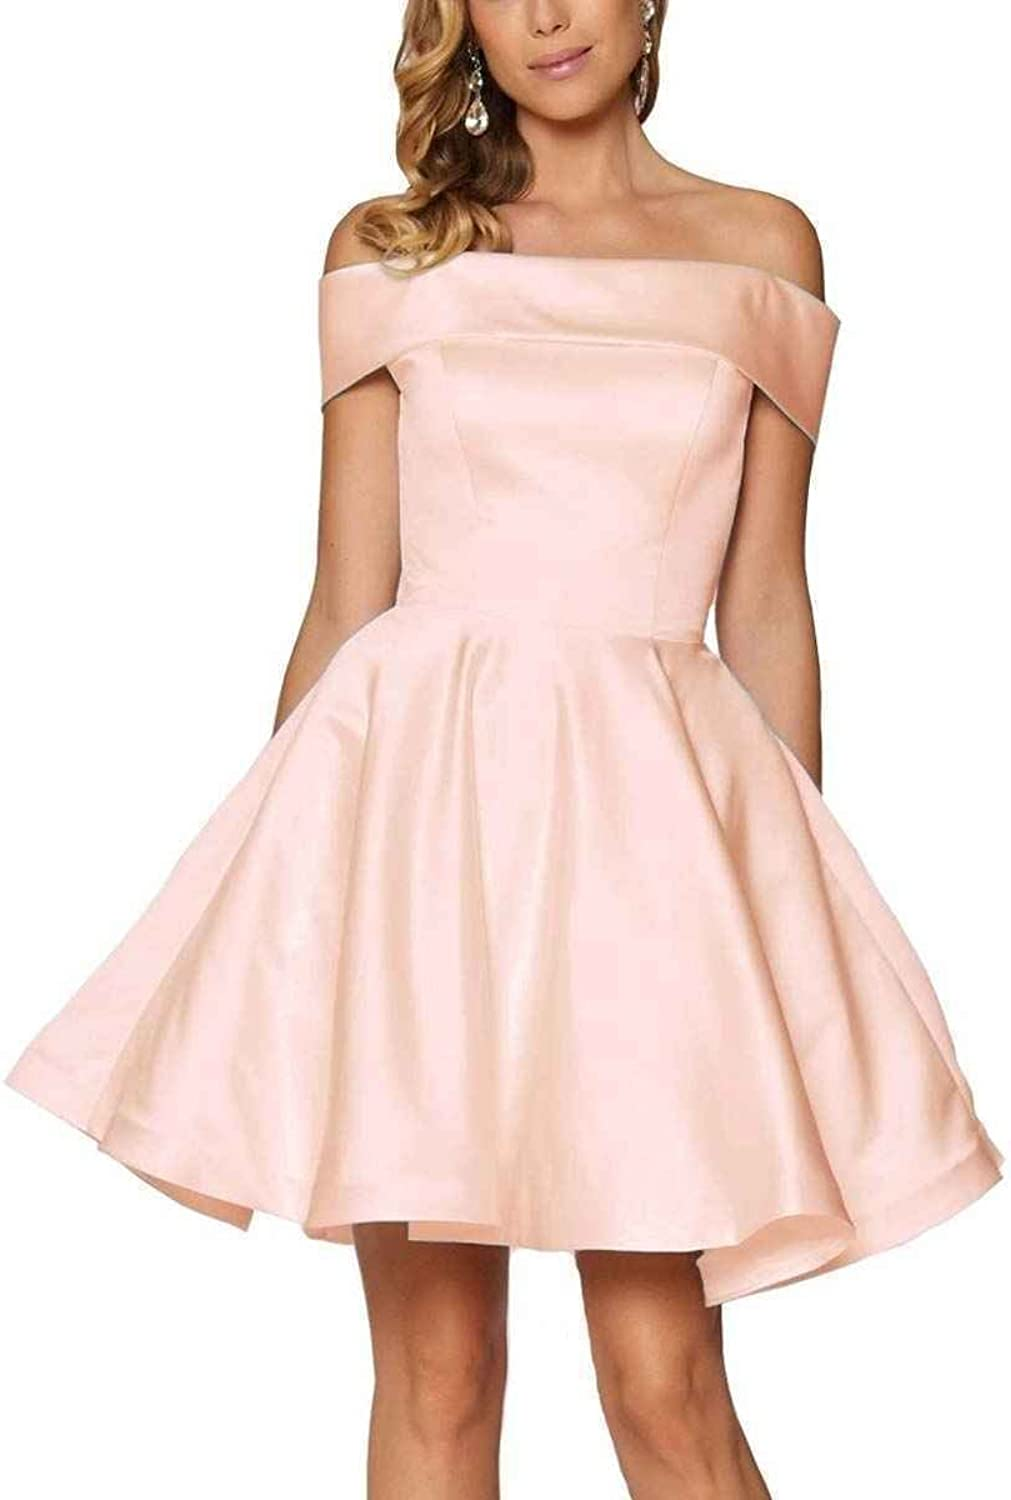 Off Shoulder Homecoming Dresses Short A Line Strapless Prom Evening Gowns Satin